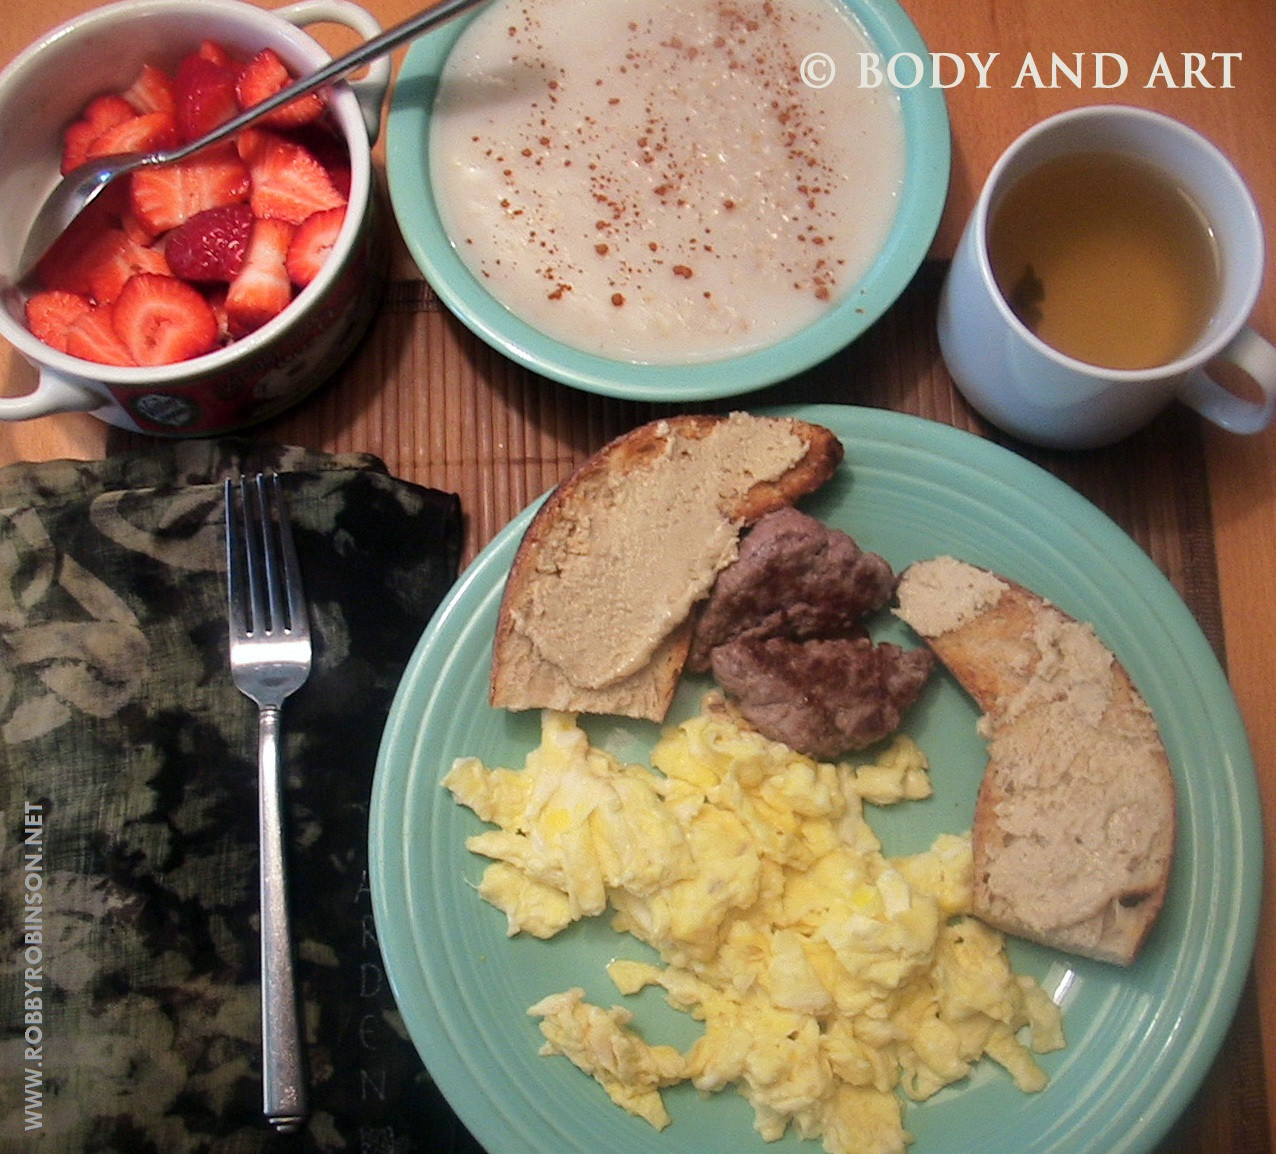 Healthy Breakfast Bodybuilding  DIARY of the BLACK PRINCE BODYBUILDING IS NOT FOR WIMPS